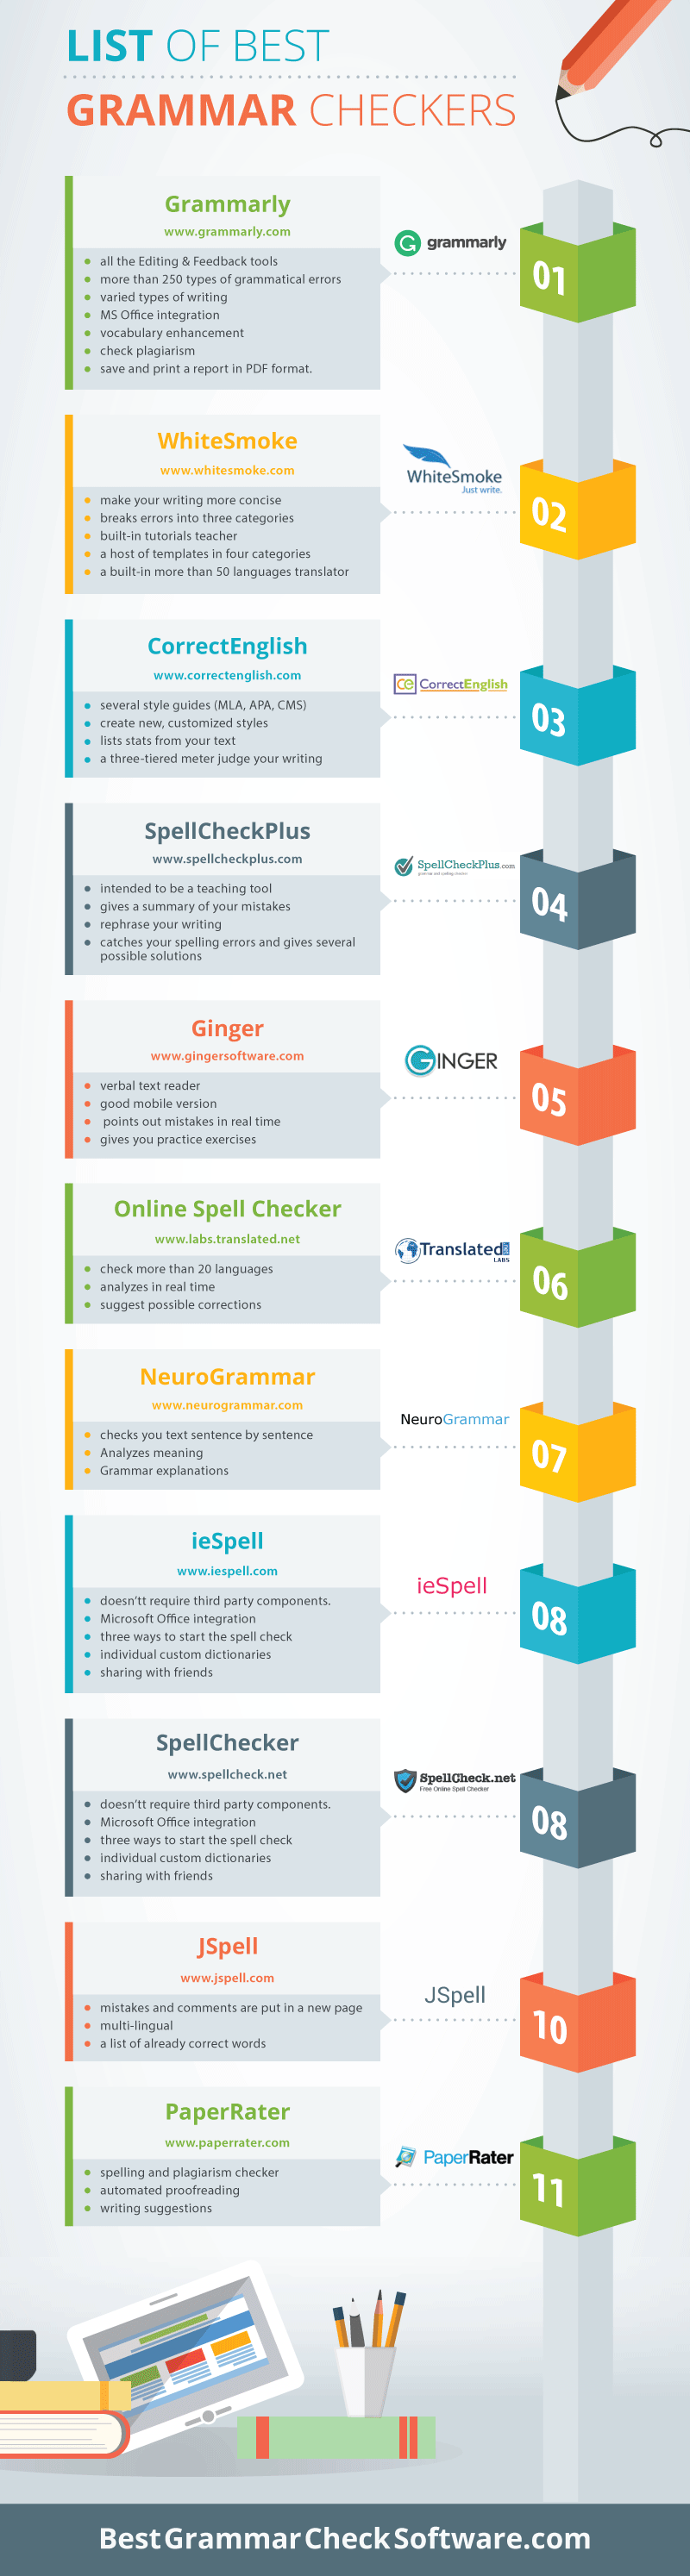 Best Grammar Checkers Infographic